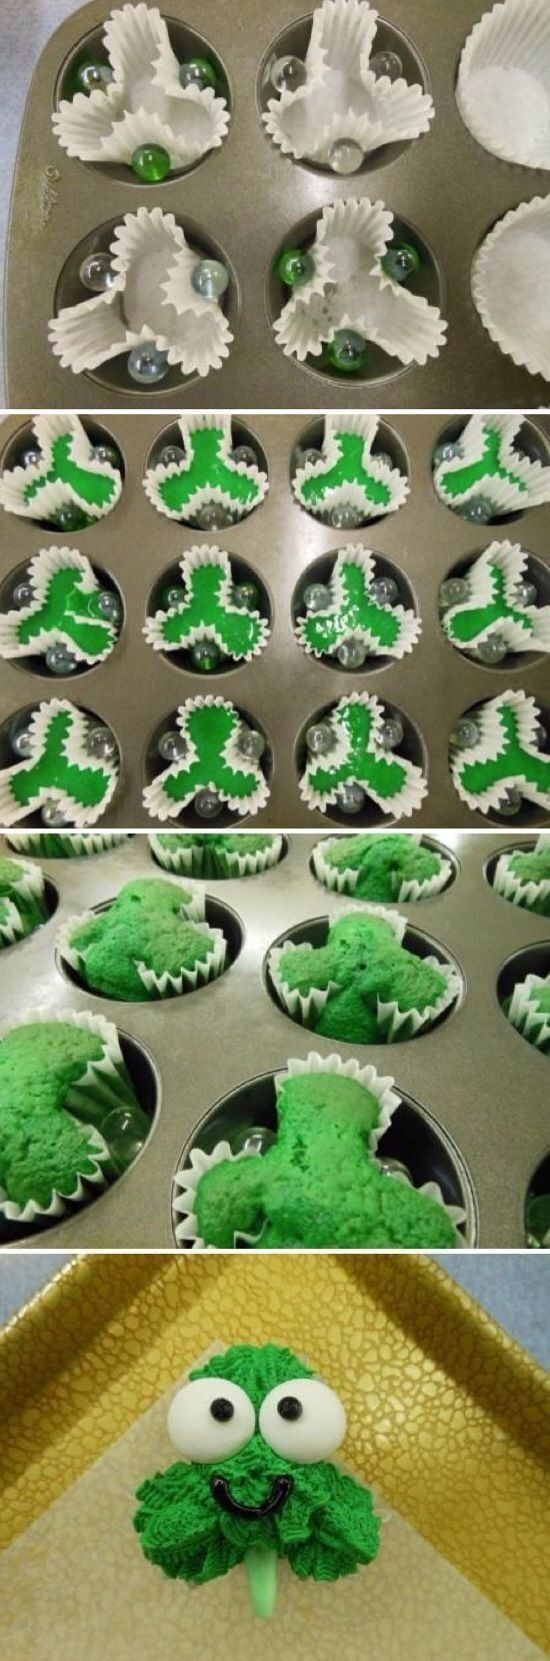 🍀🍰How To Make Shamrock Shaped Cupcakes And A Few Other Creative Ideas For Cupcakes🍰🍀,